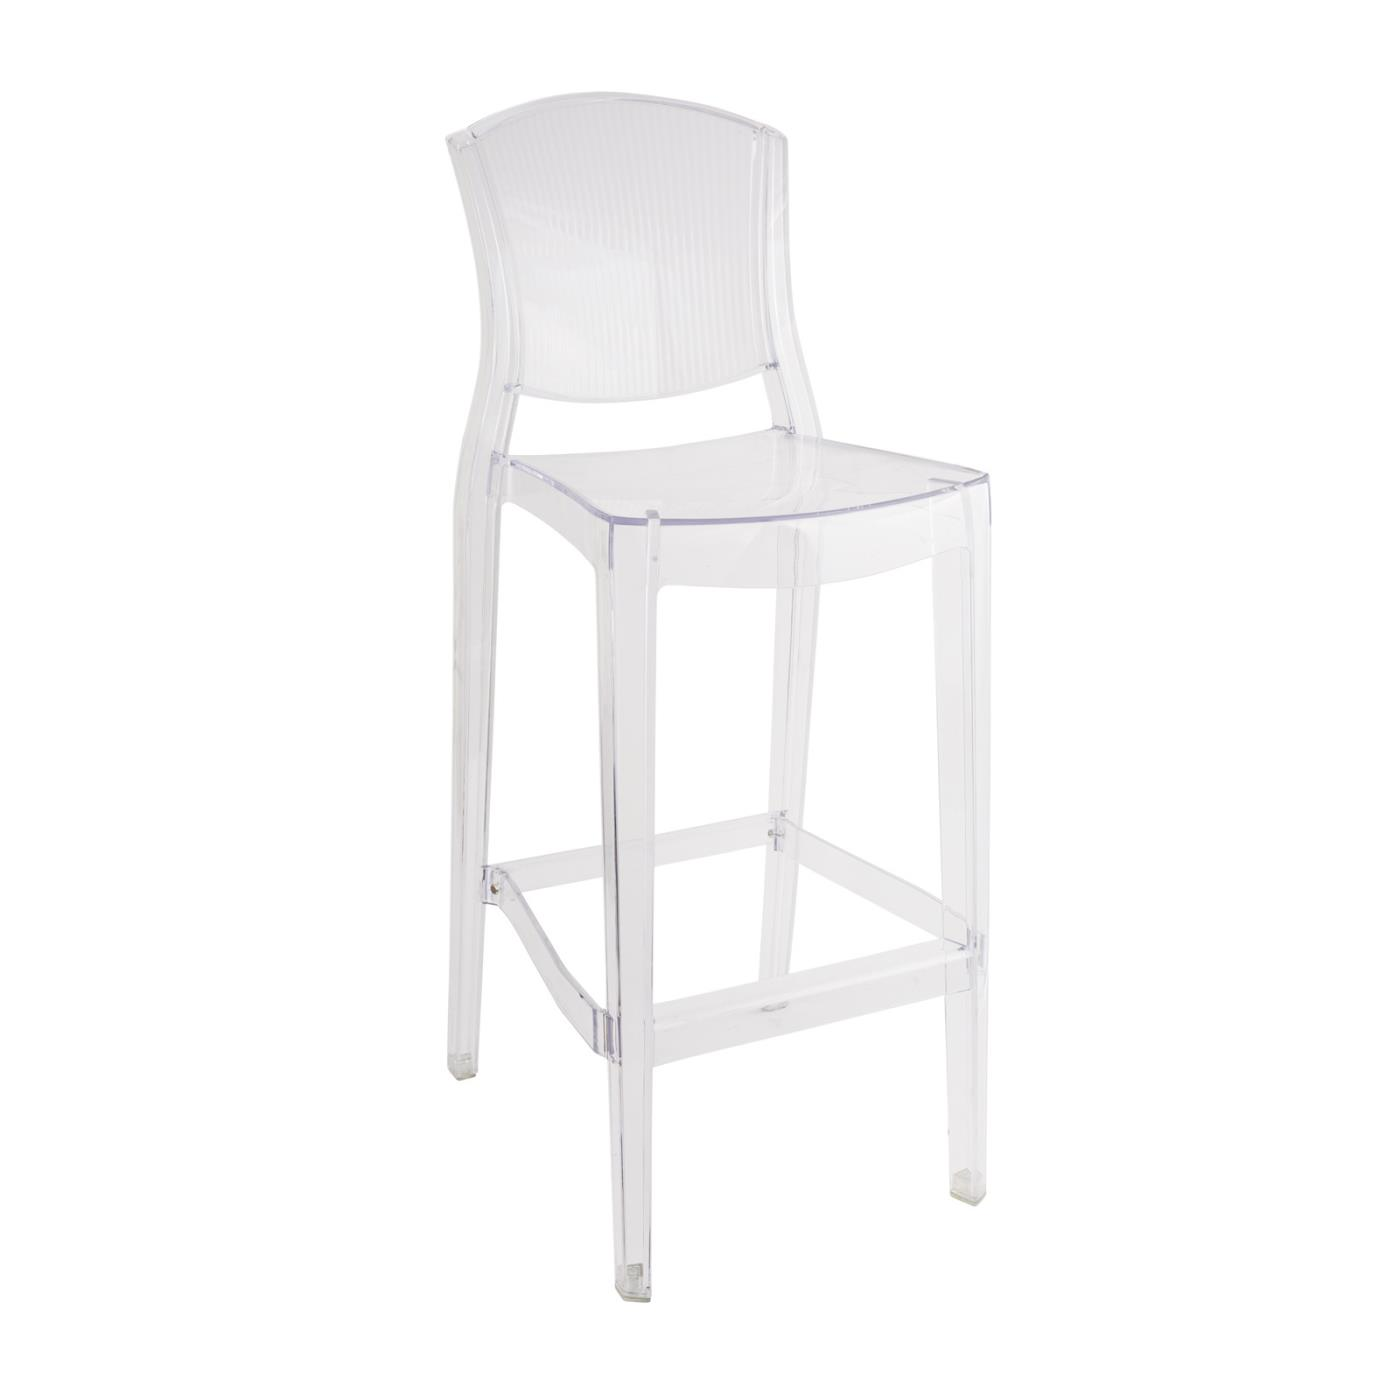 Wondrous Bar Stool Rentals Nyc Area Sdpr Onthecornerstone Fun Painted Chair Ideas Images Onthecornerstoneorg